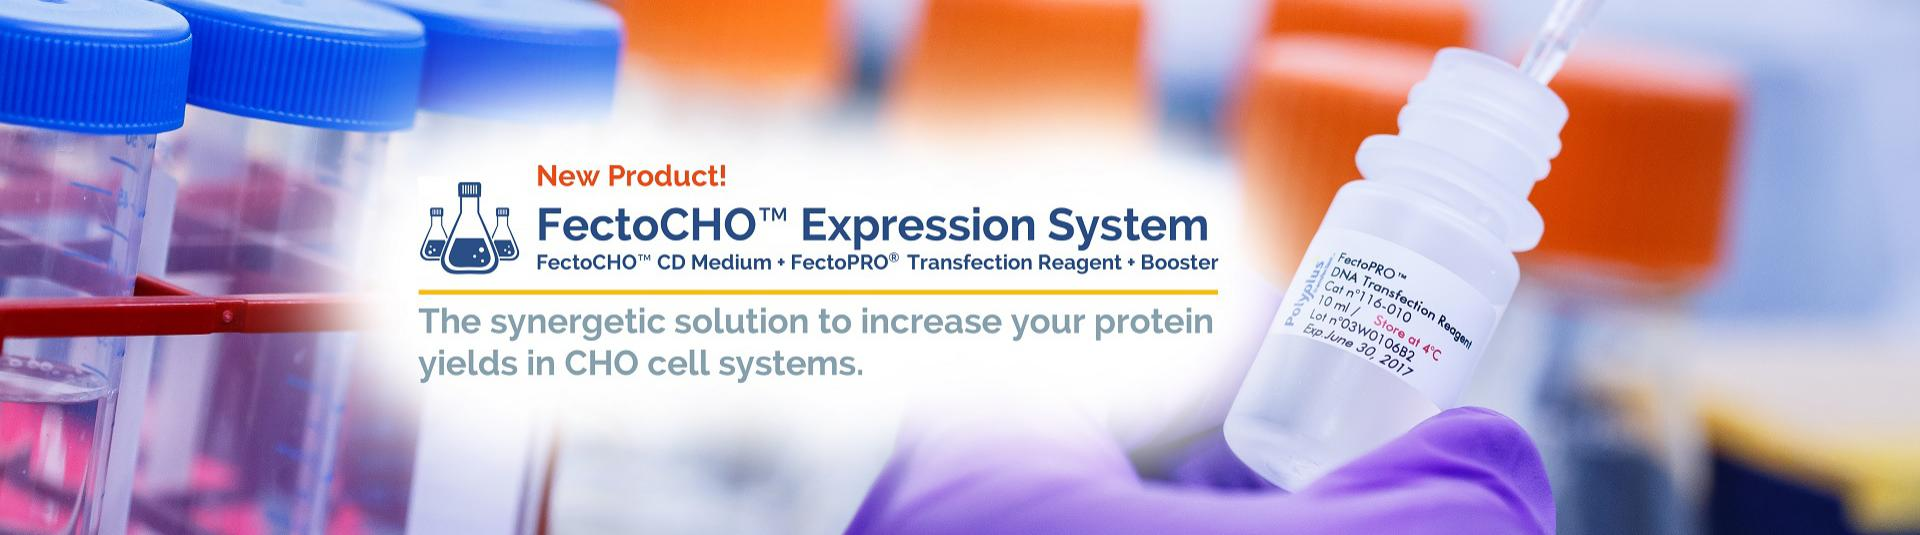 FectoCHO Expression System - New Product - Polyplus-transfection